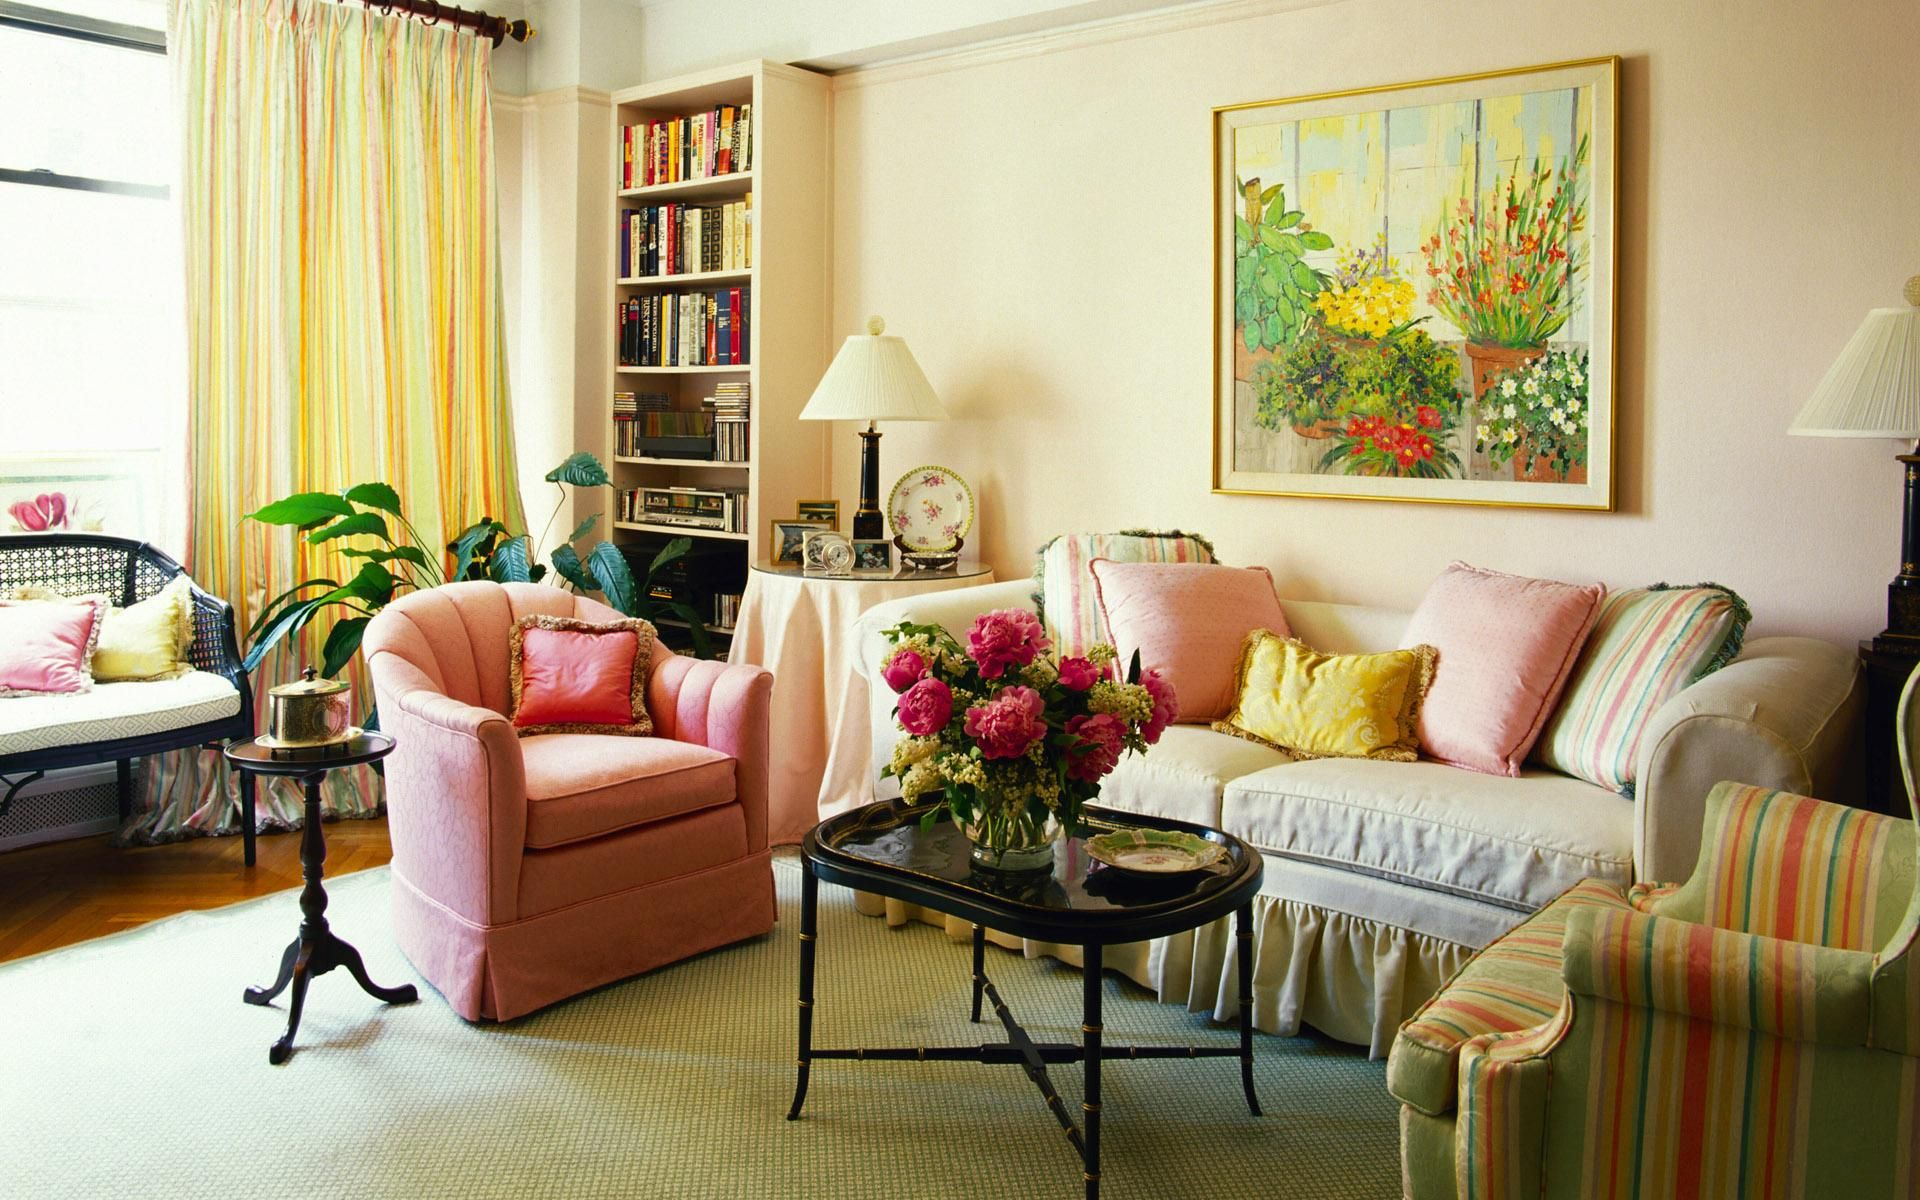 Living Room Furnished With Black Table Decorated With Vase Flowers  Decoration Astounding Traditional Small Living Room Ideas With Sofa And  Chair Completed ...